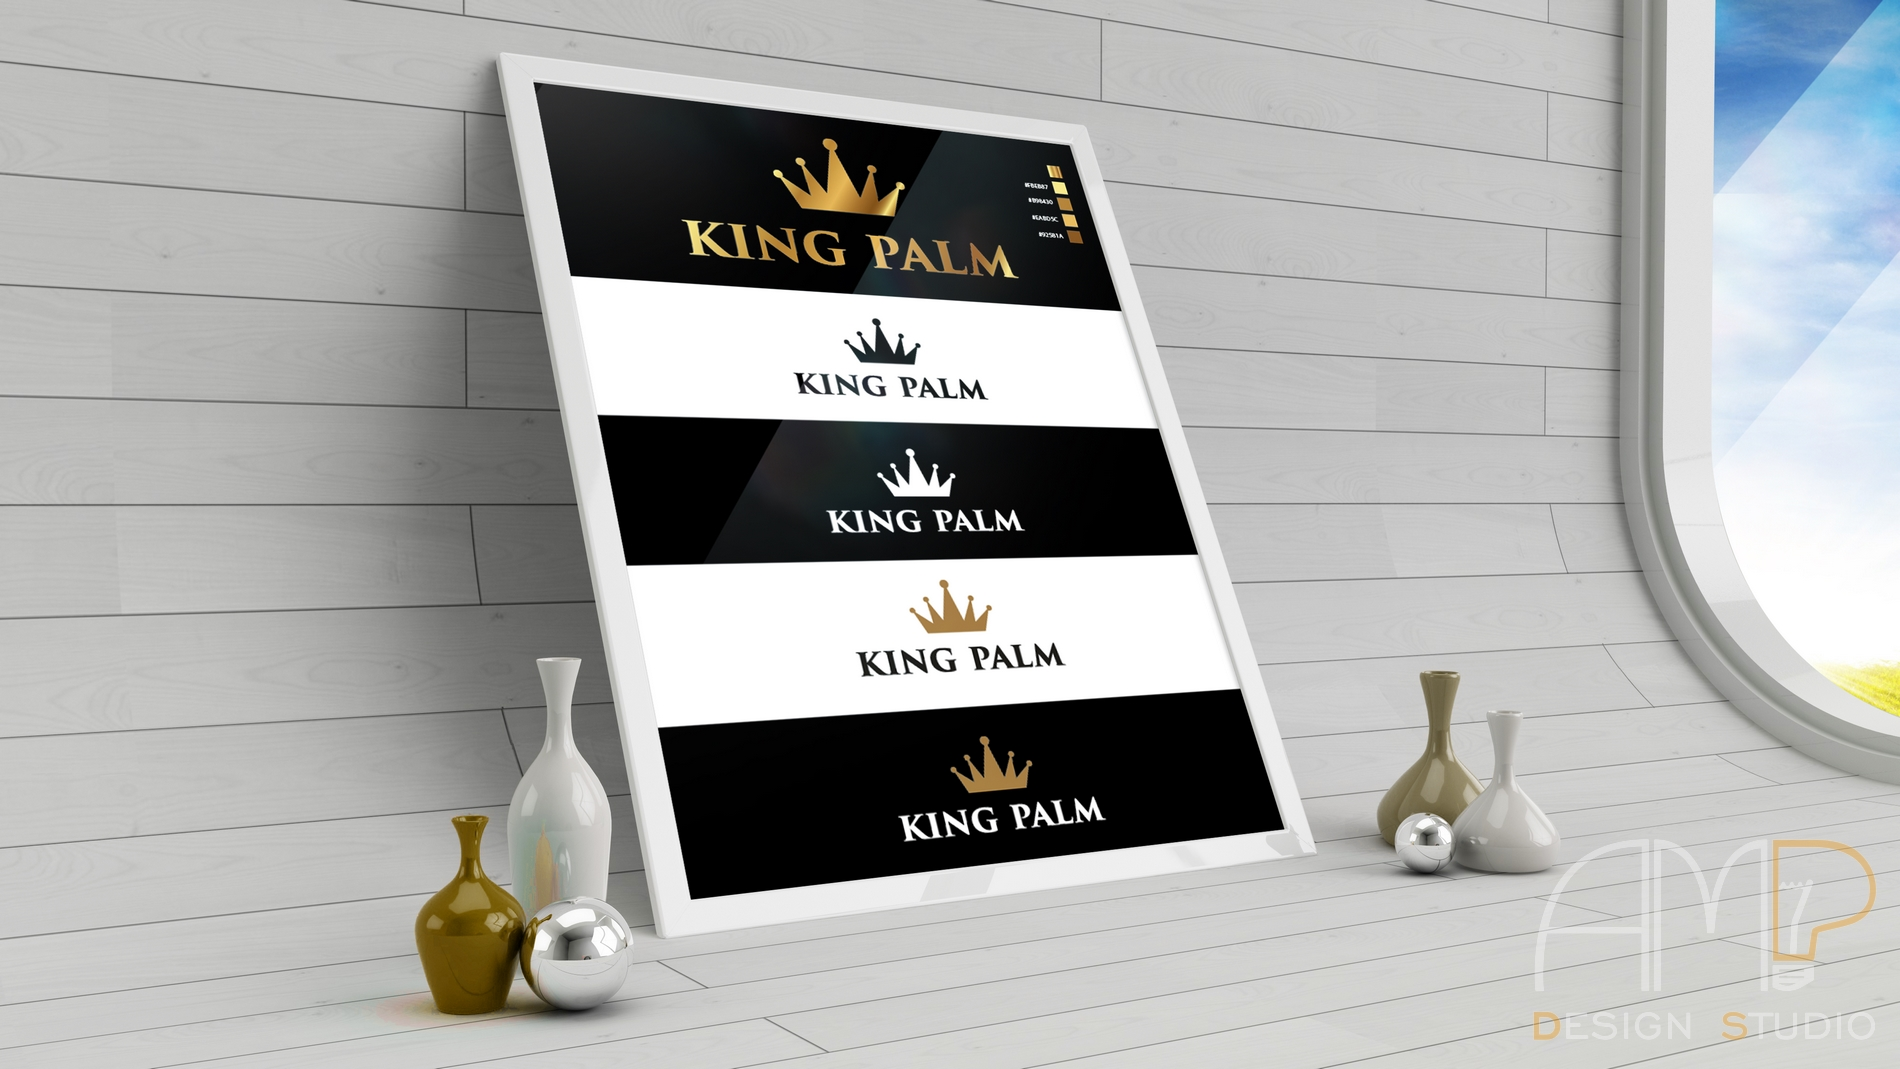 KingPalm logo NEW 3-05